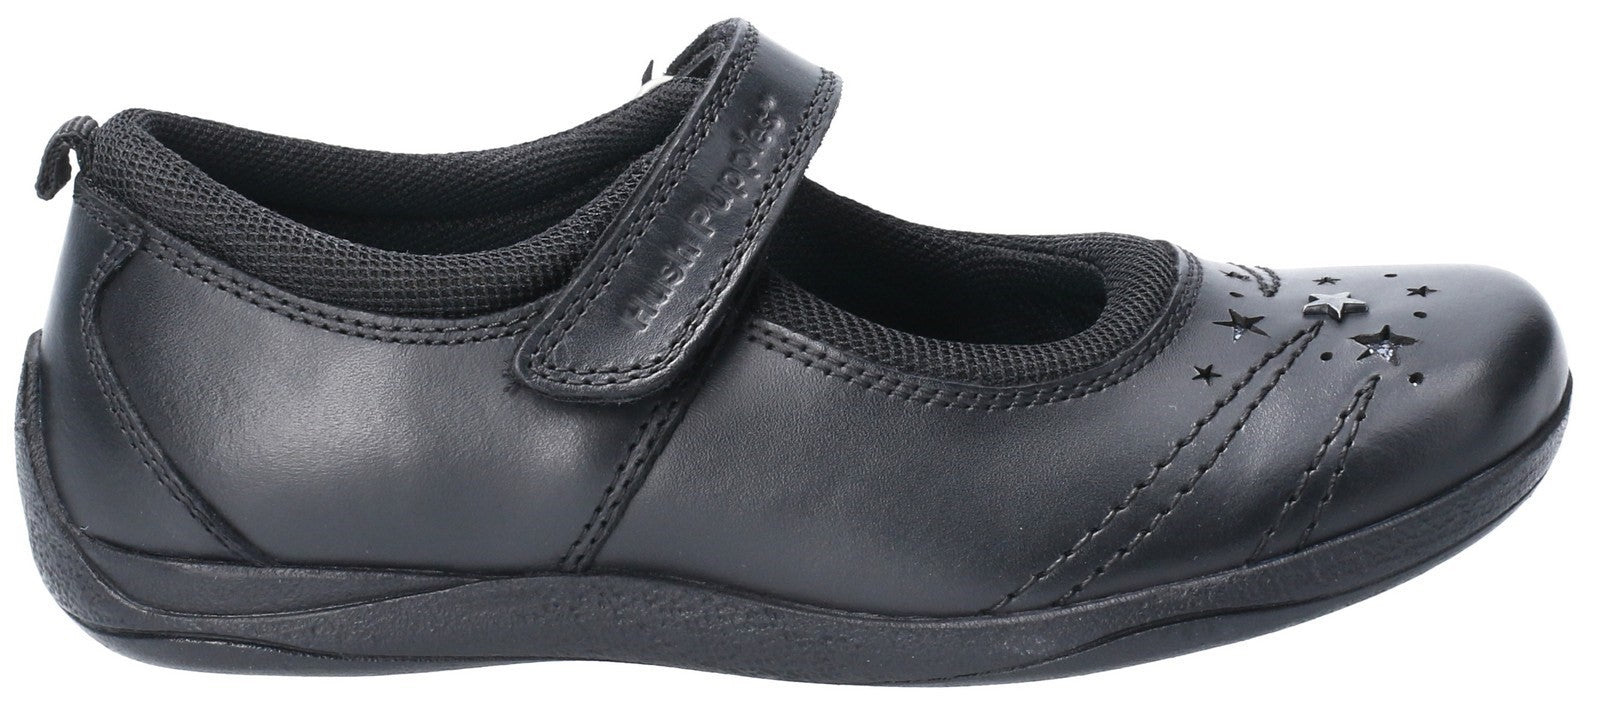 Hush Puppies Men's Amber Snr Touch Fastening School Shoe Black 28980